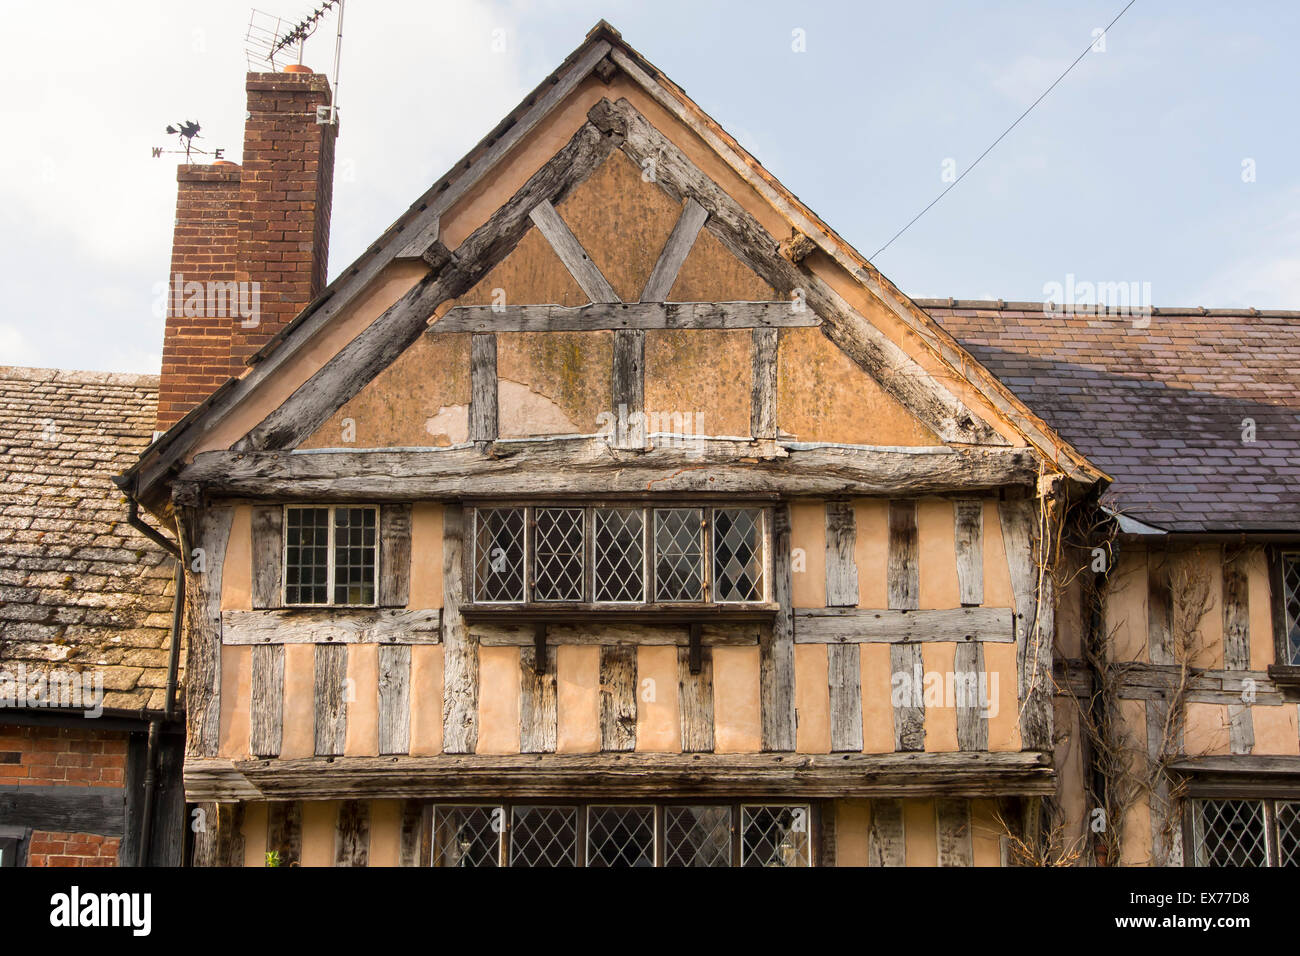 Ancient Medieval Tudor Timber Framed Houses In Pembridge